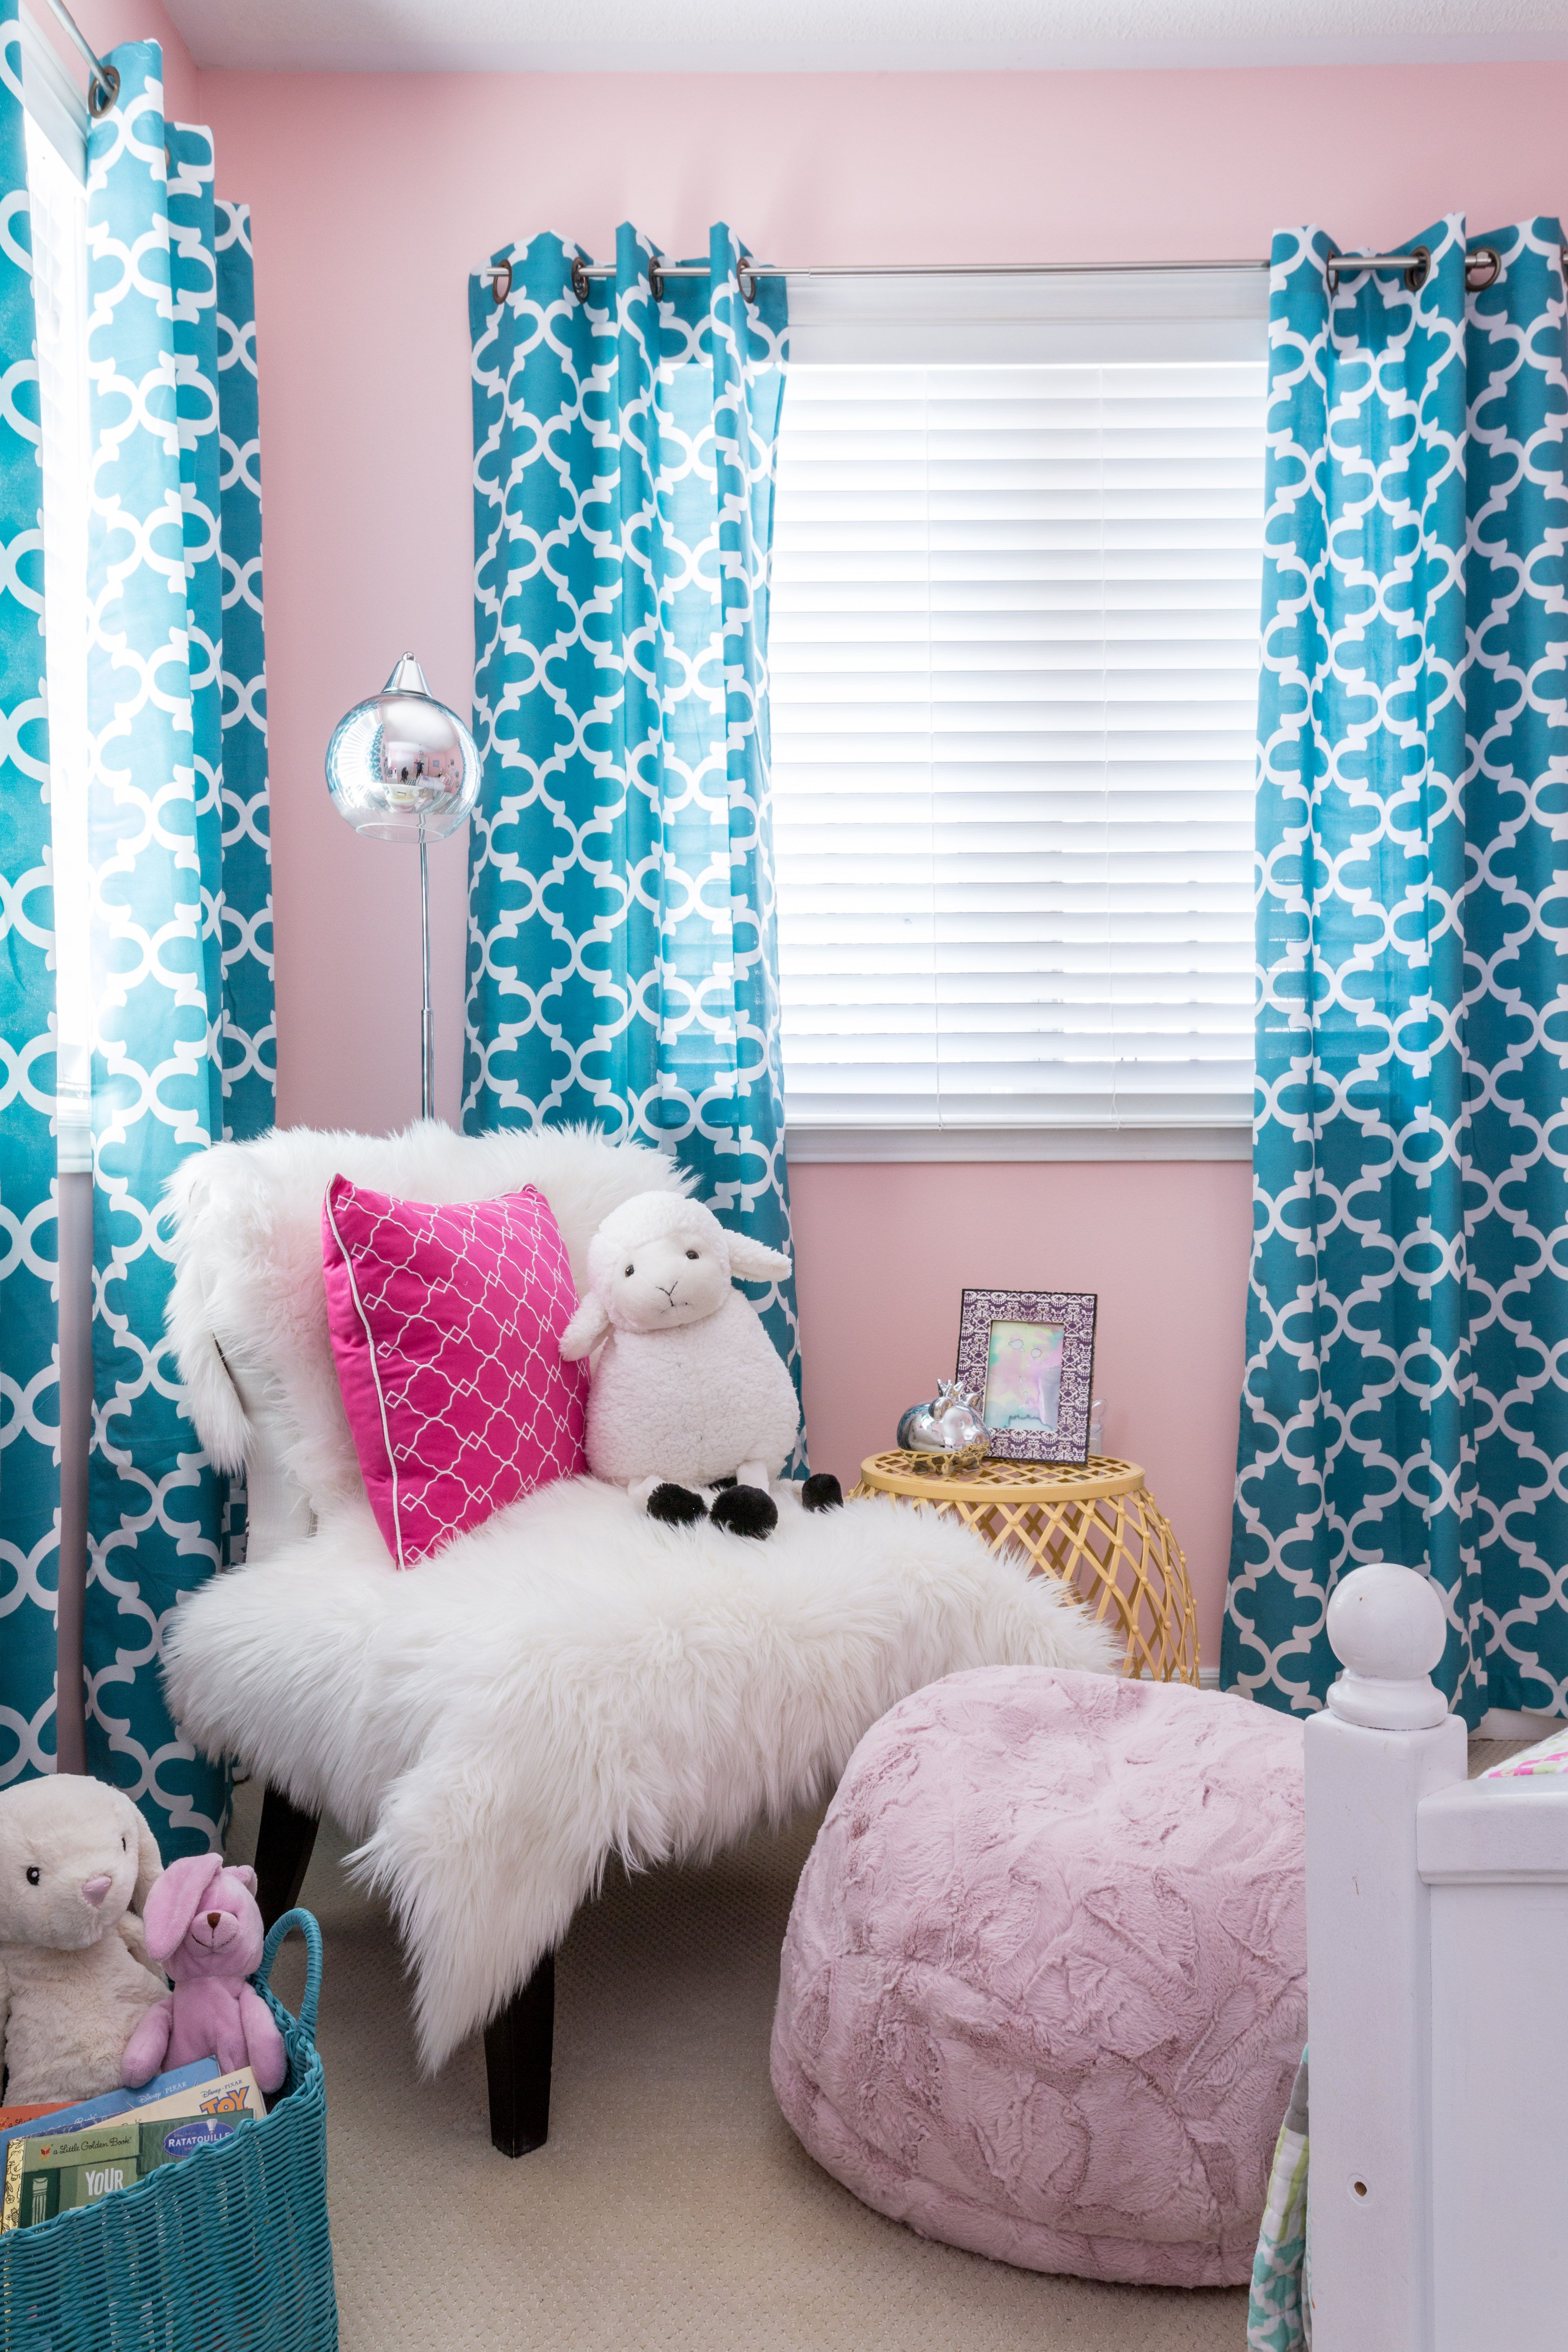 Little girls reading area pink walls blue patterned curtains sheep skin chair pink puff